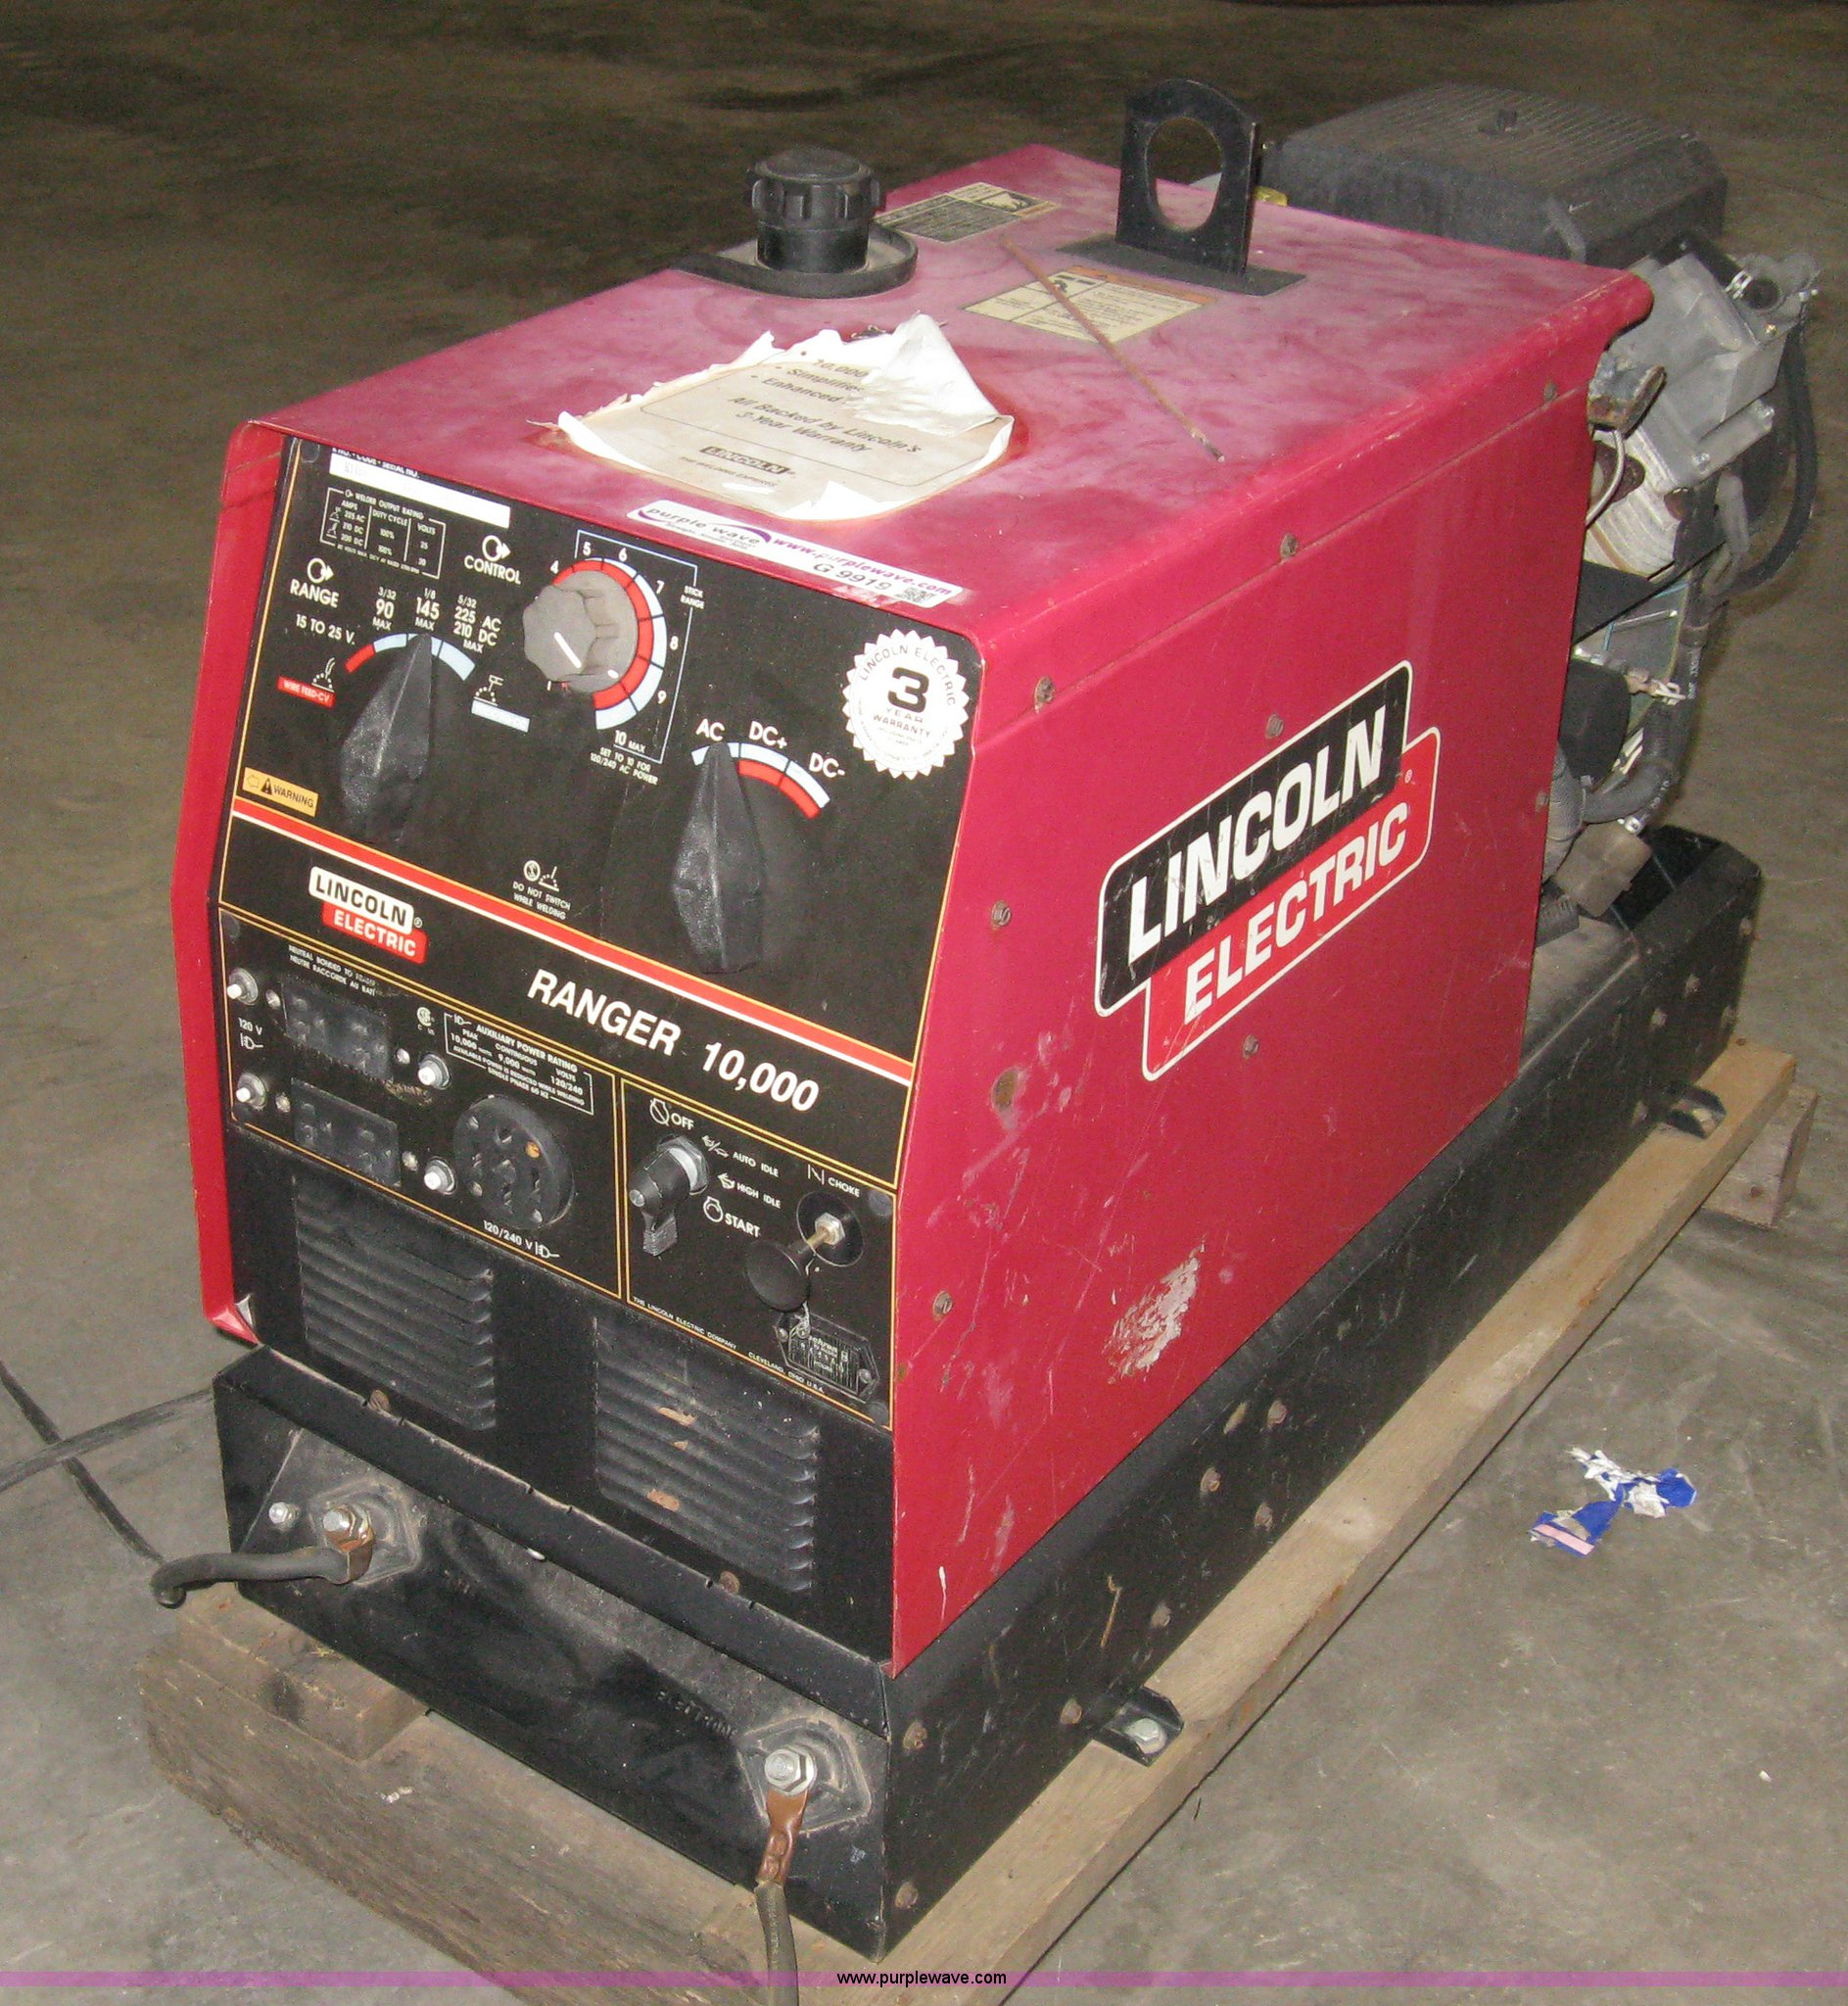 Lincoln Electric Ranger 10,000 welder/generator | Item G9919